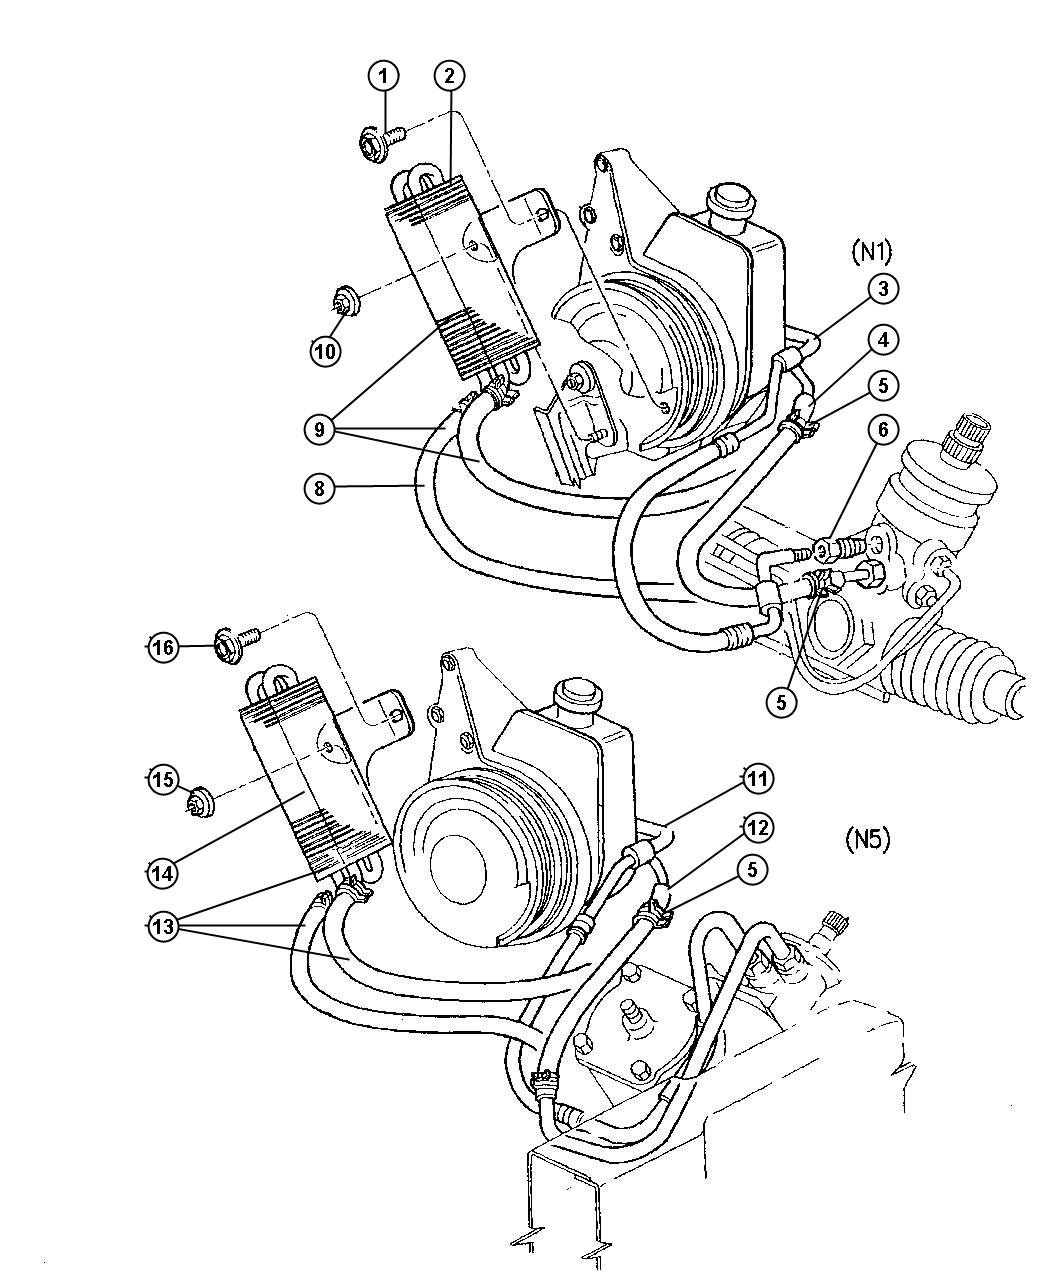 harley ignition module wiring diagram